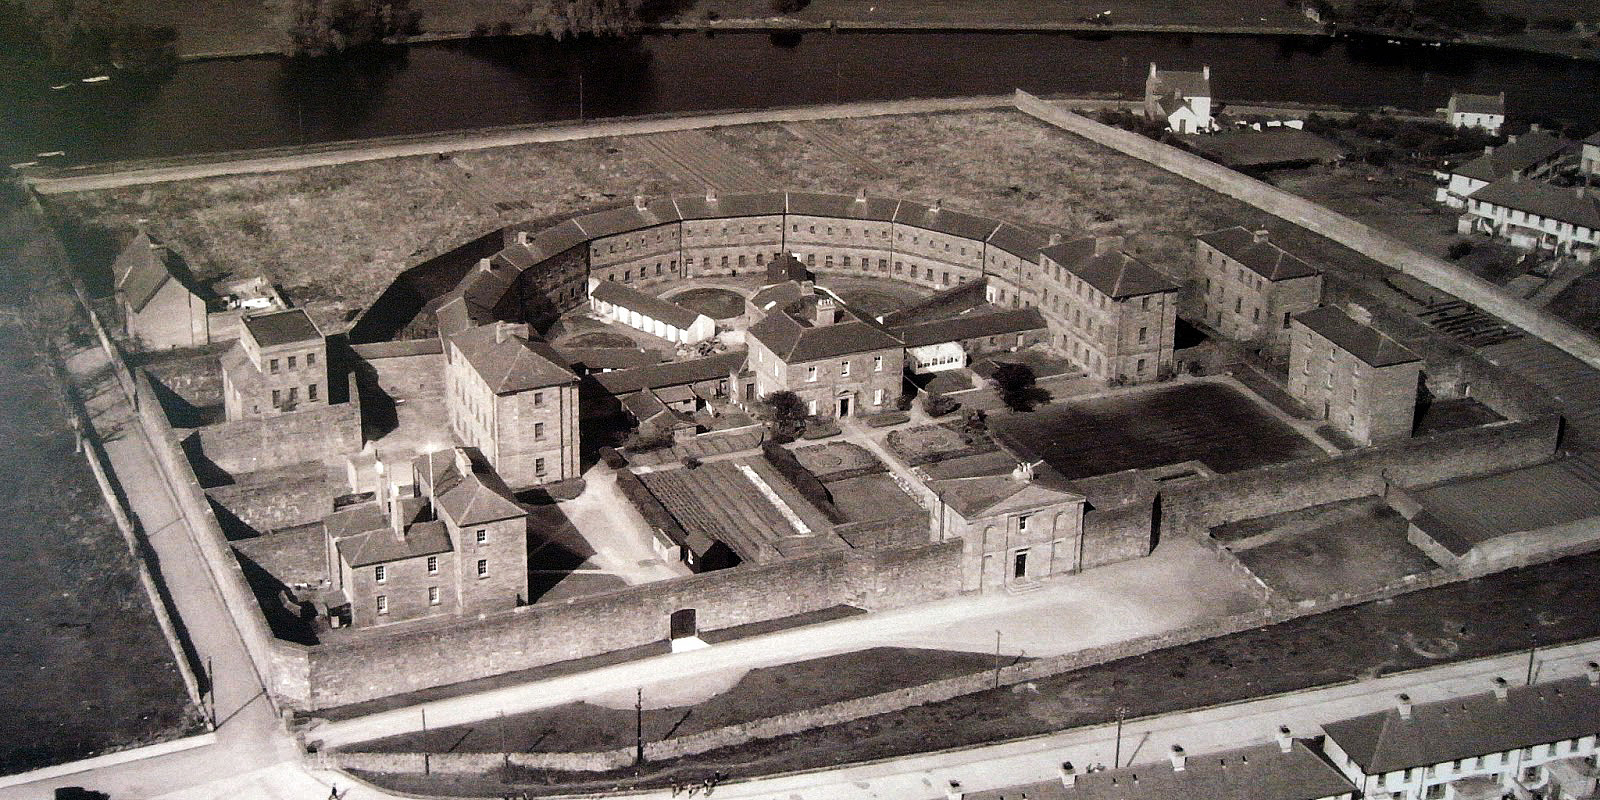 Sligo Gaol aerial view in 1950s